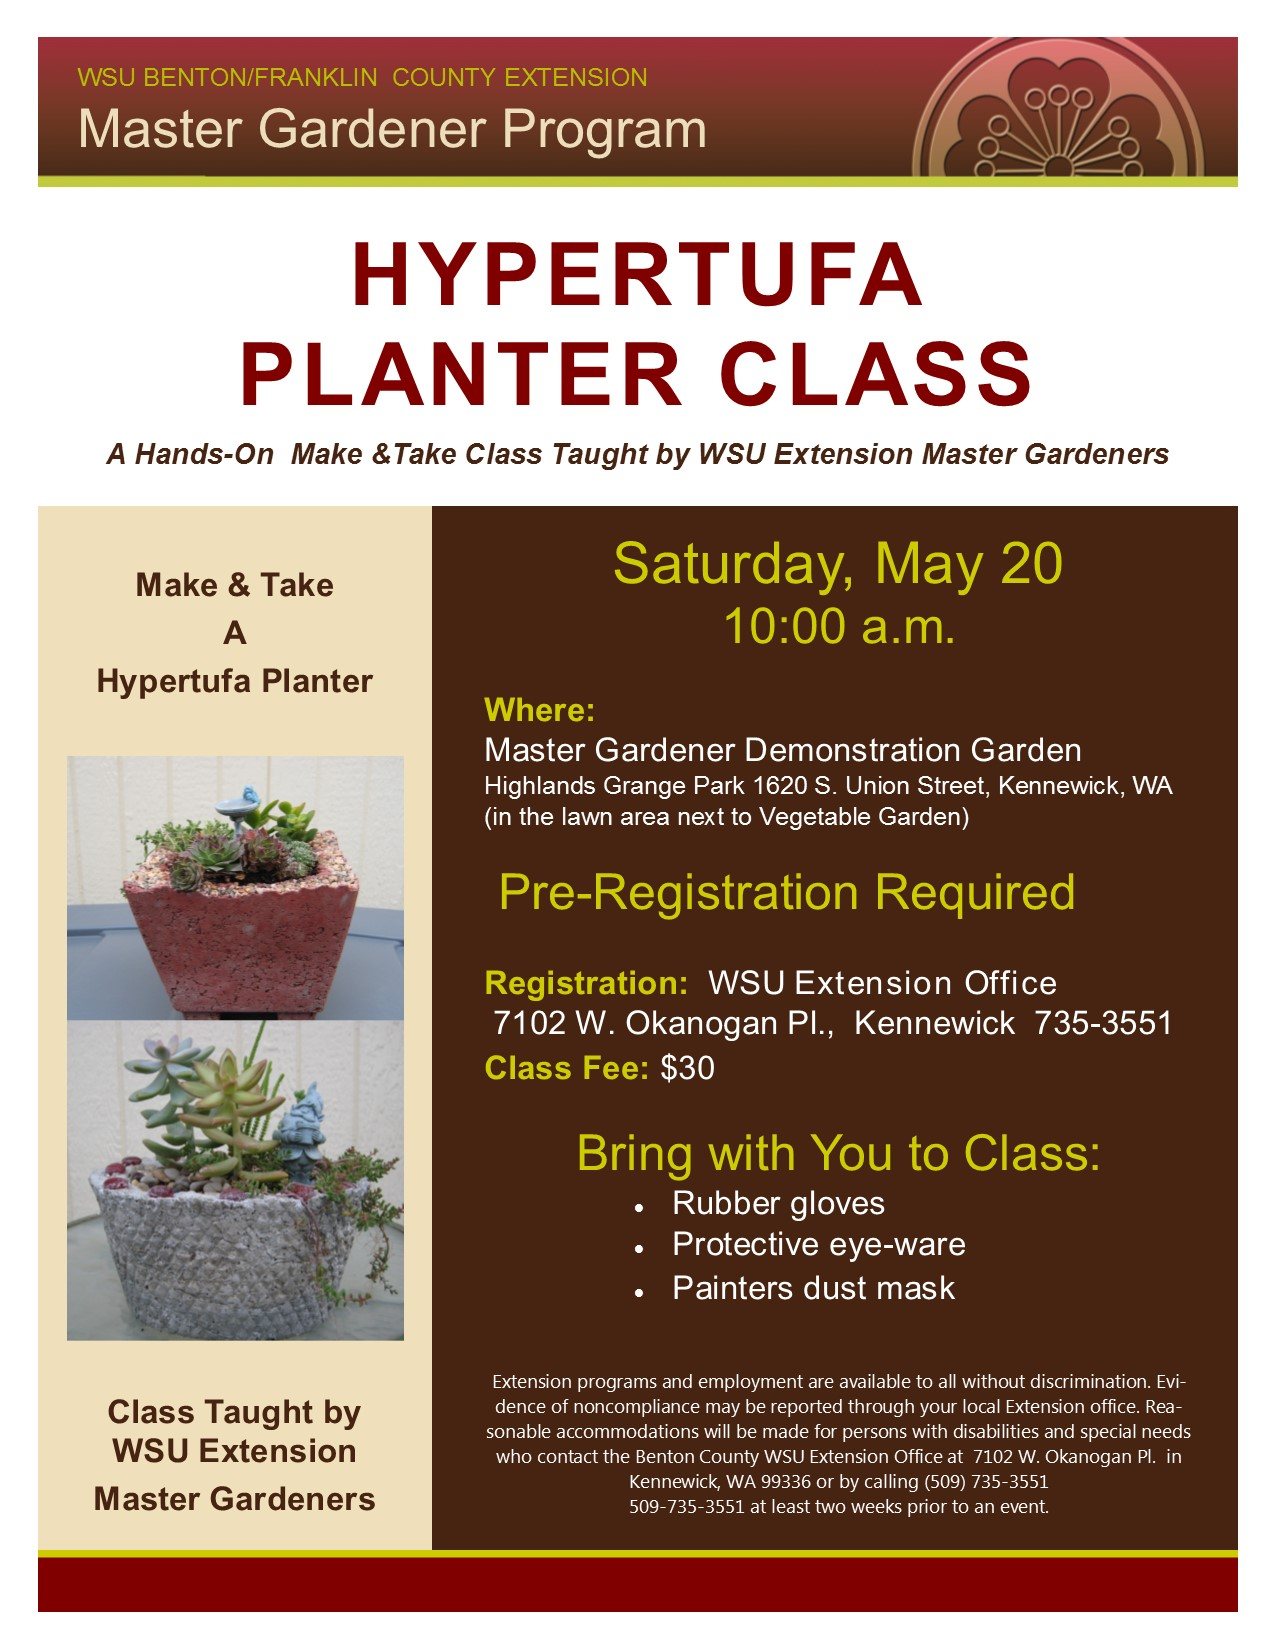 HYPERTUFA PLANTER CLASS A Hands-On Make &Take Class Taught by WSU Extension Master Gardeners WSU BENTON/FRANKLIN COUNTY EXTENSION Master Gardener Program Saturday, May 20 10:00 a.m. Where: Master Gardener Demonstration Garden Highlands Grange Park 1620 S. Union Street, Kennewick, WA (in the lawn area next to Vegetable Garden) Pre-Registration Required Registration at: WSU Extension Office 7102 W. Okanogan Pl., Kennewick 735-3551 Class Fee: $30 Bring with You to Class:  Rubber gloves  Protective eye-ware  Painters dust mask Extension programs and employment are available to all without discrimination. Evidence of non-compliance may be reported through your local Extension office. Reasonable accommodations will be made for persons with disabilities and special needs who contact the Benton County WSU Extension Office at 7102 W. Okanogan Pl. in Kennewick, WA 99336 or by calling (509) 735-3551 at least two weeks prior to an event. Make & Take A Hypertufa Planter Class Taught by WSU Extension Master Gardeners